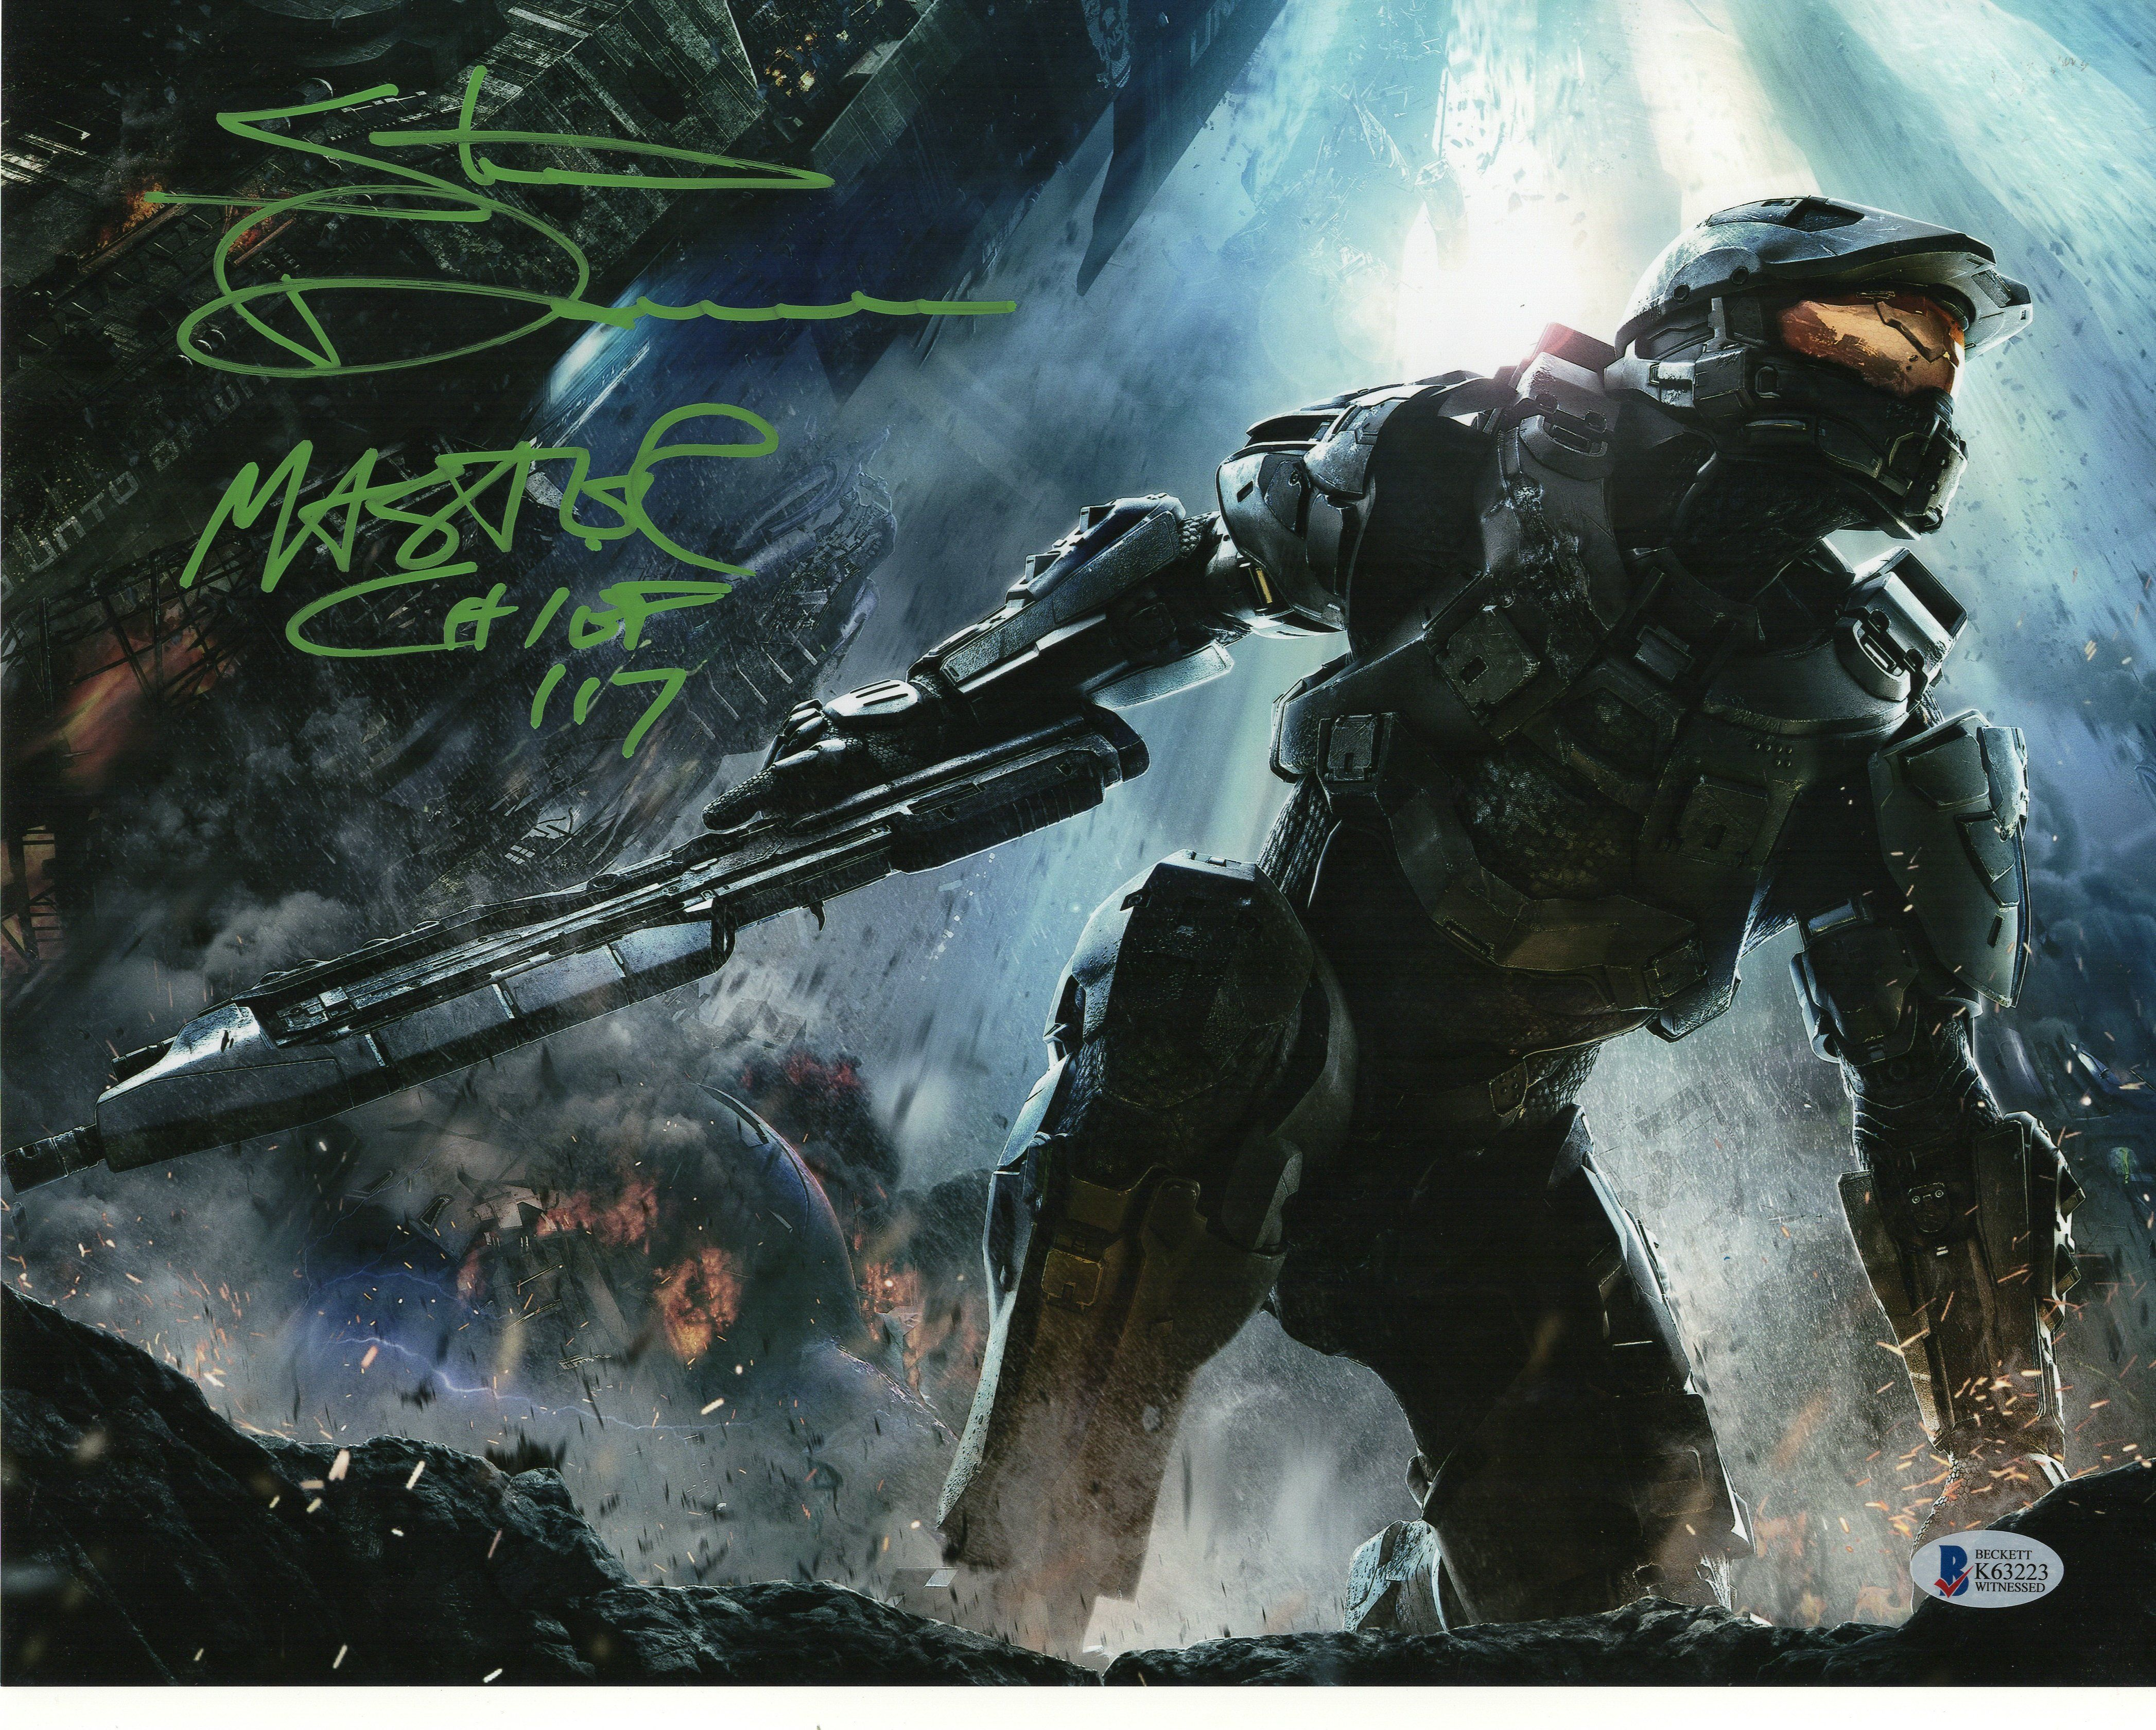 Steve Downes Signed 11x14 Photo Halo Master Chief Autograph Bas